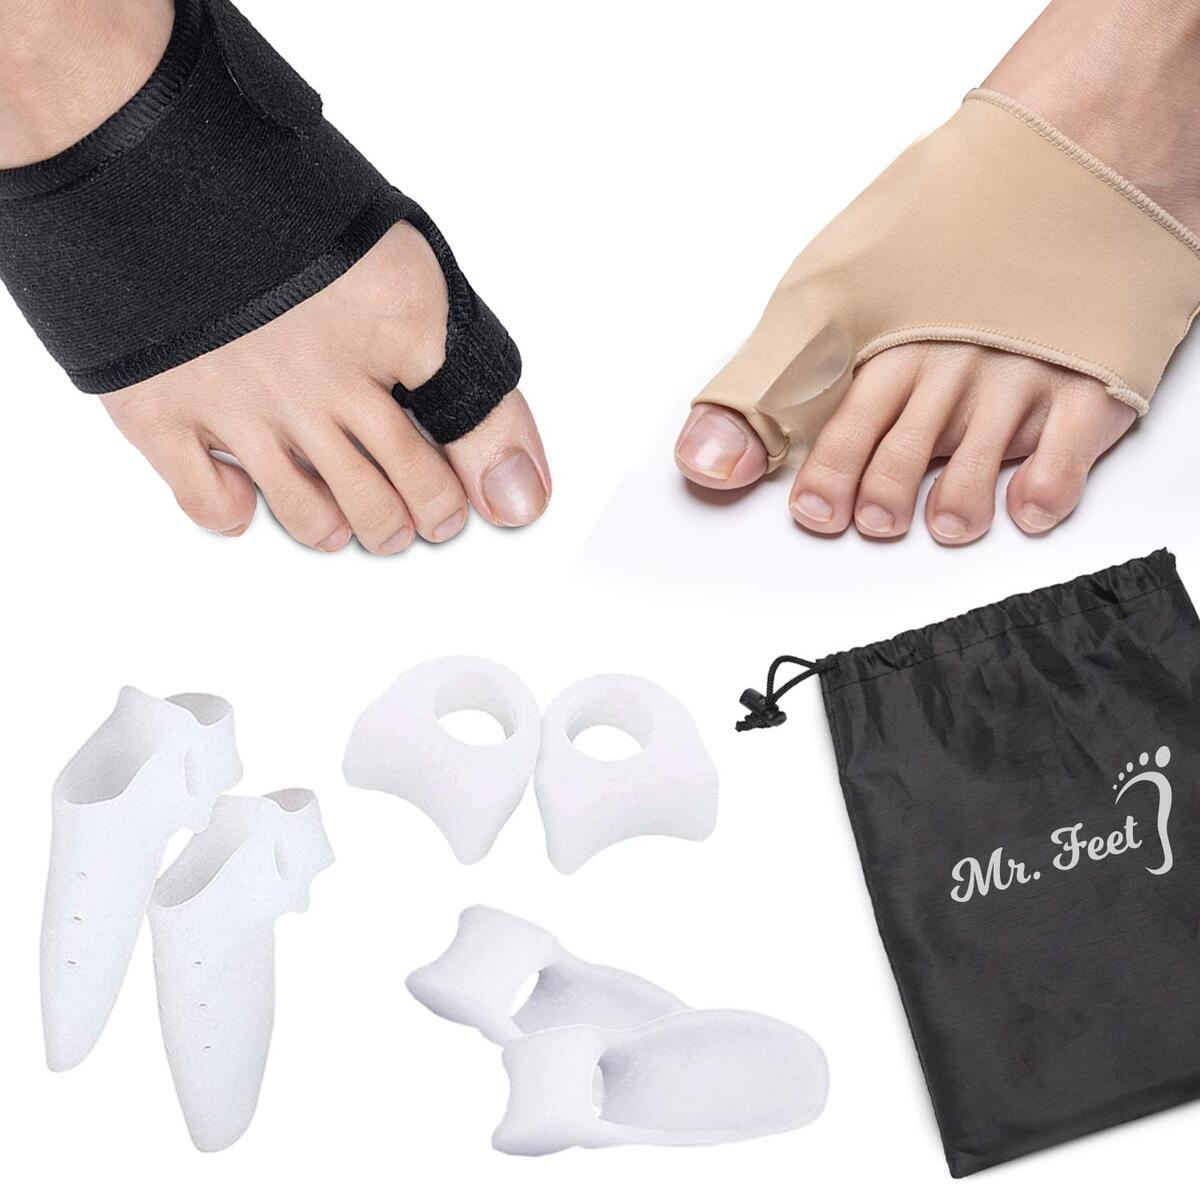 Bunion Corrector and Bunion Pain Relief kit-, 10pcs Orthopedic set - Hallux Valgus Splint, Bunion Protector Sleeves or Socks, Toe Separators –Big Toe, Hammer Toe Straightener (for Men & Women)